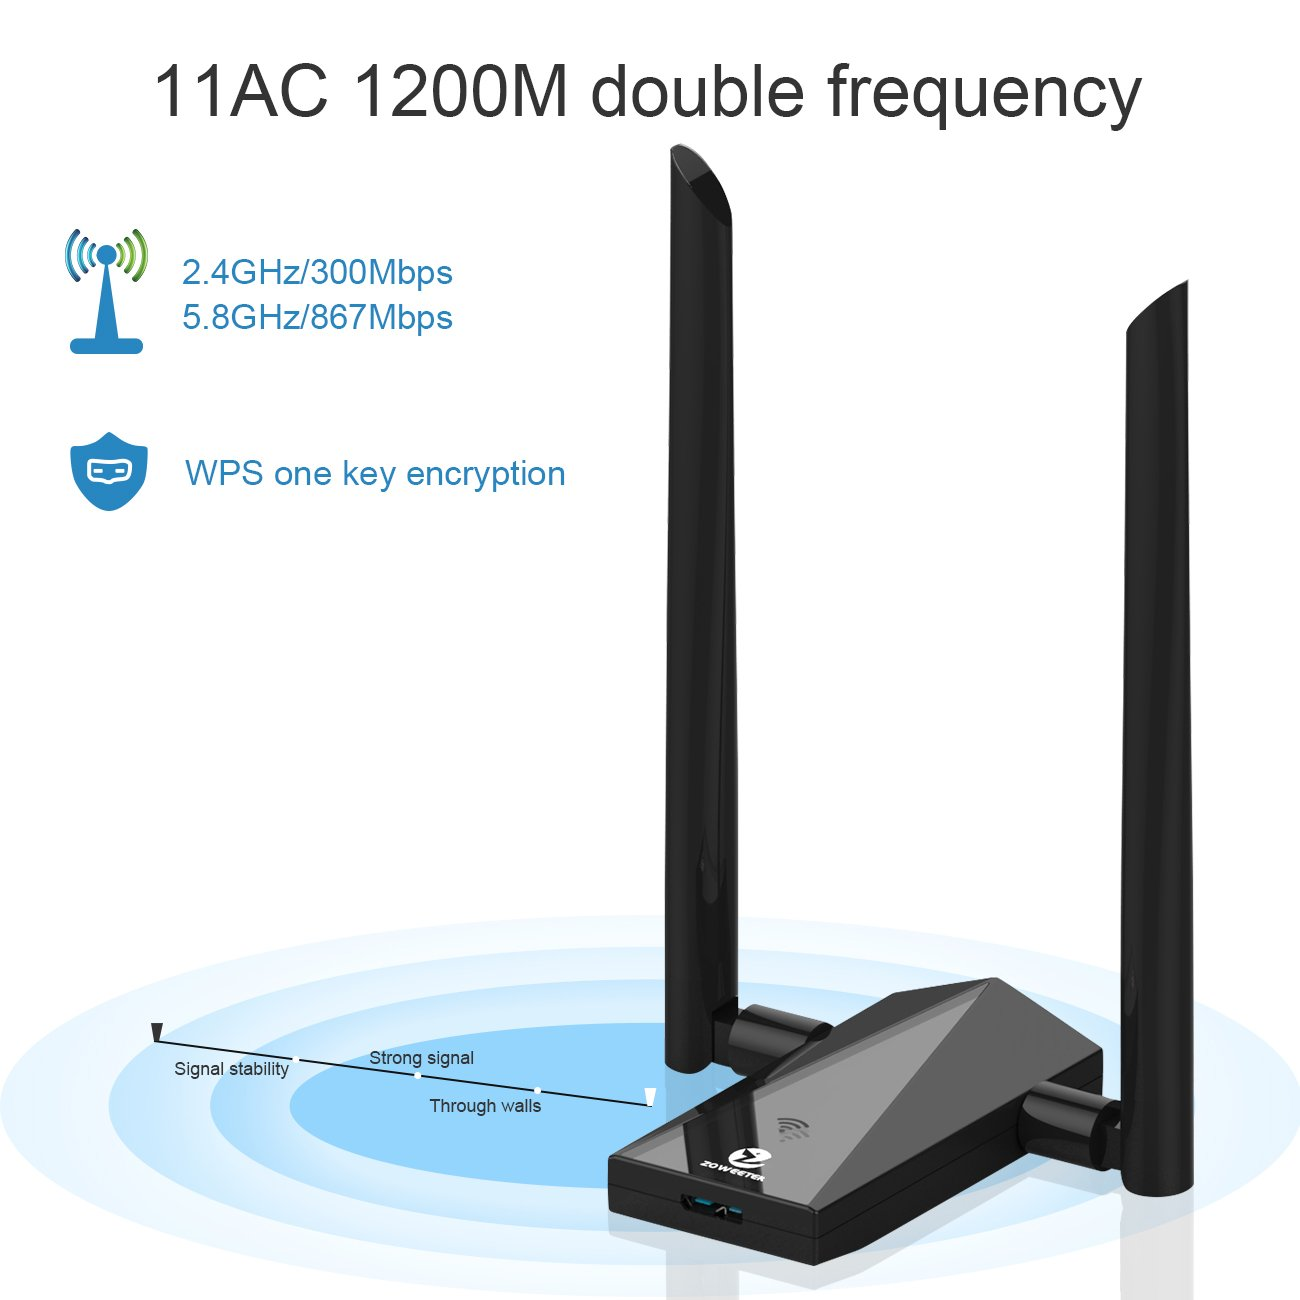 Zoweetek Wi-Fi Adapter AC 1200Mbps USB 3.0 Dual Band (5.8G /2.4G) Long Range Network Adapter, Built-in Intelligence Antenna High Speed Transmission For Mac OS X 10.6-10.12 / Windows XP / Vista / 7 / 8 / 8.1 / 10 etc